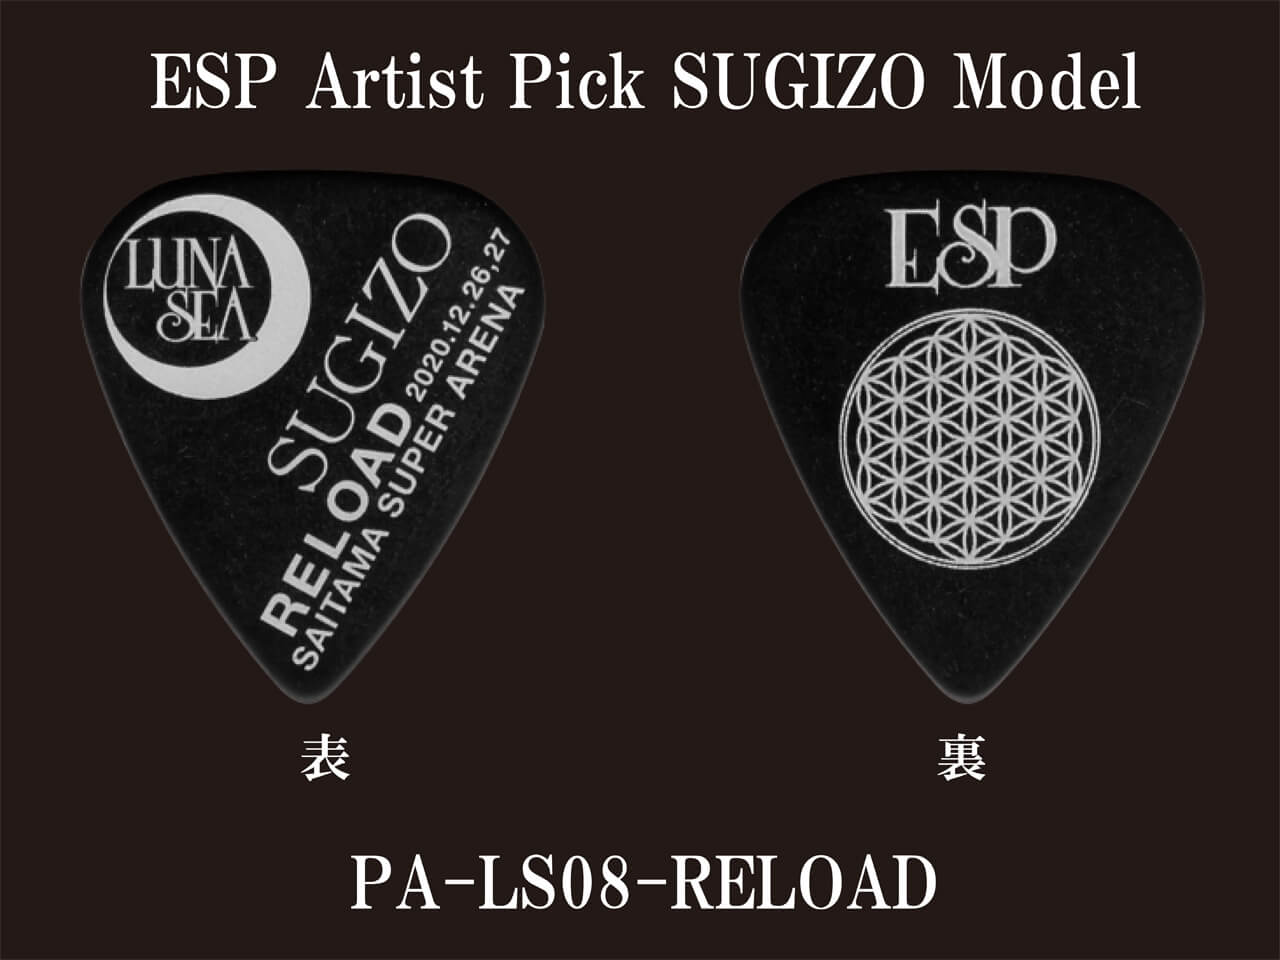 ESP(イーエスピー) Artist Pick Series PA-LS08-RELOAD LUNA SEA RELOAD SUGIZOピック (LUNA SEA/SUGIZOモデル)